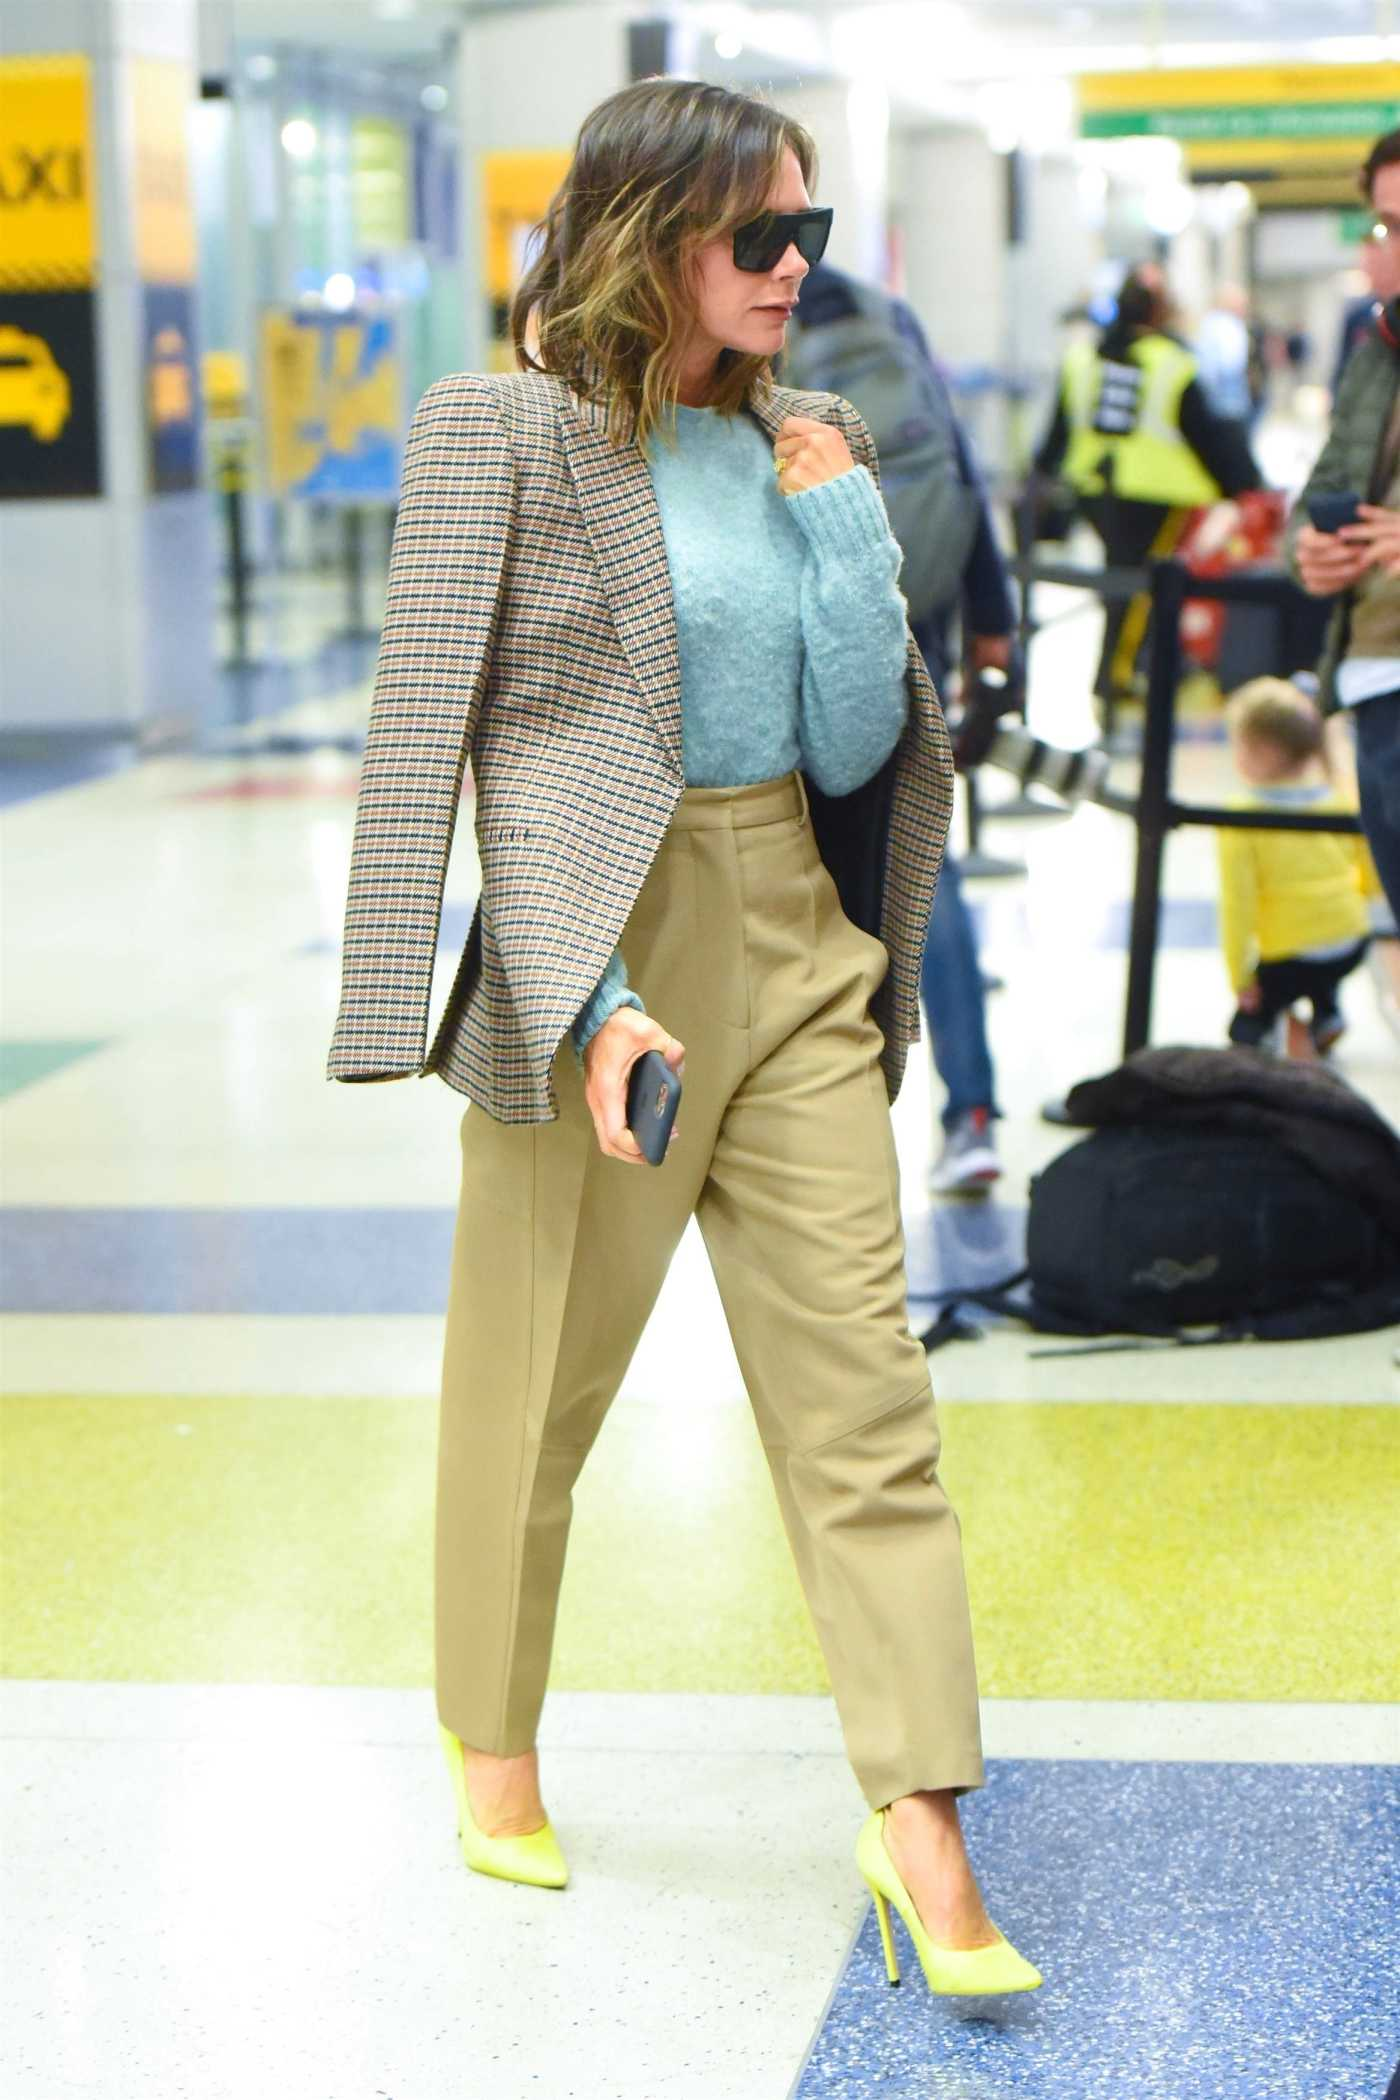 Victoria Beckham in a Beige Pants Arrives at JFK Airport in New York 10/14/2019